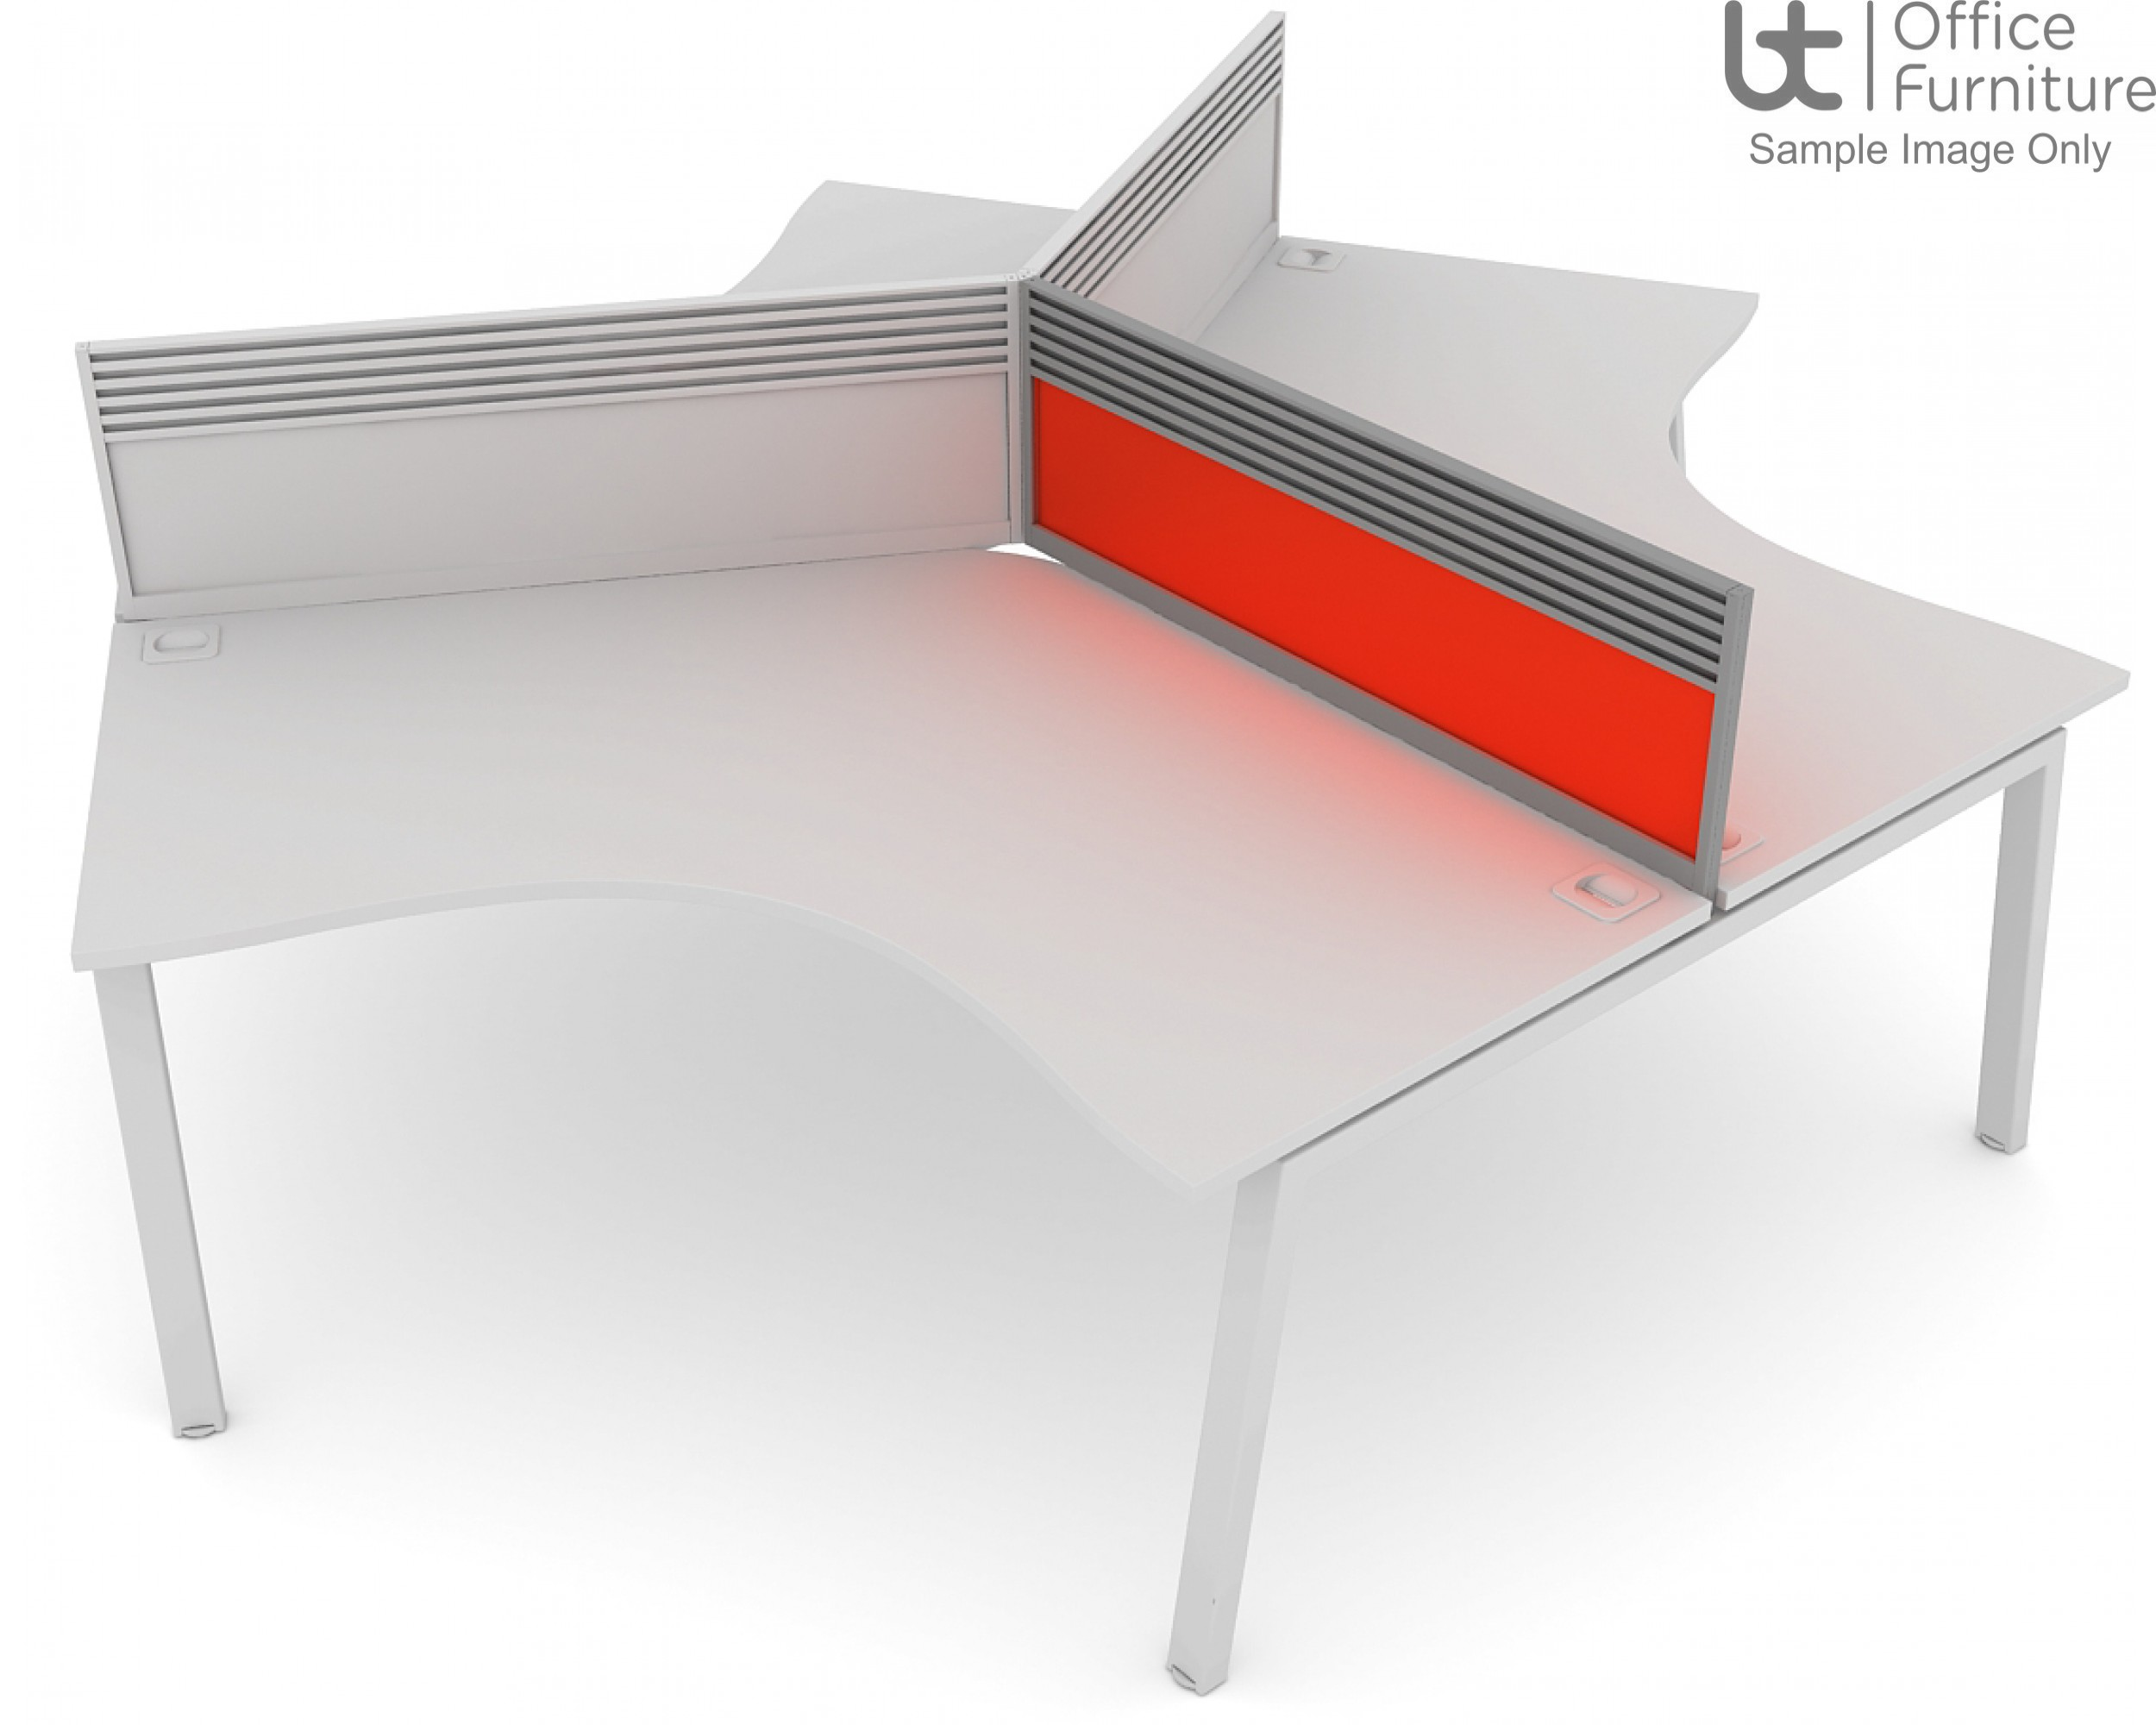 Elite Linnea System Screen - Acrylic 120 Degree Screen with Management Rail